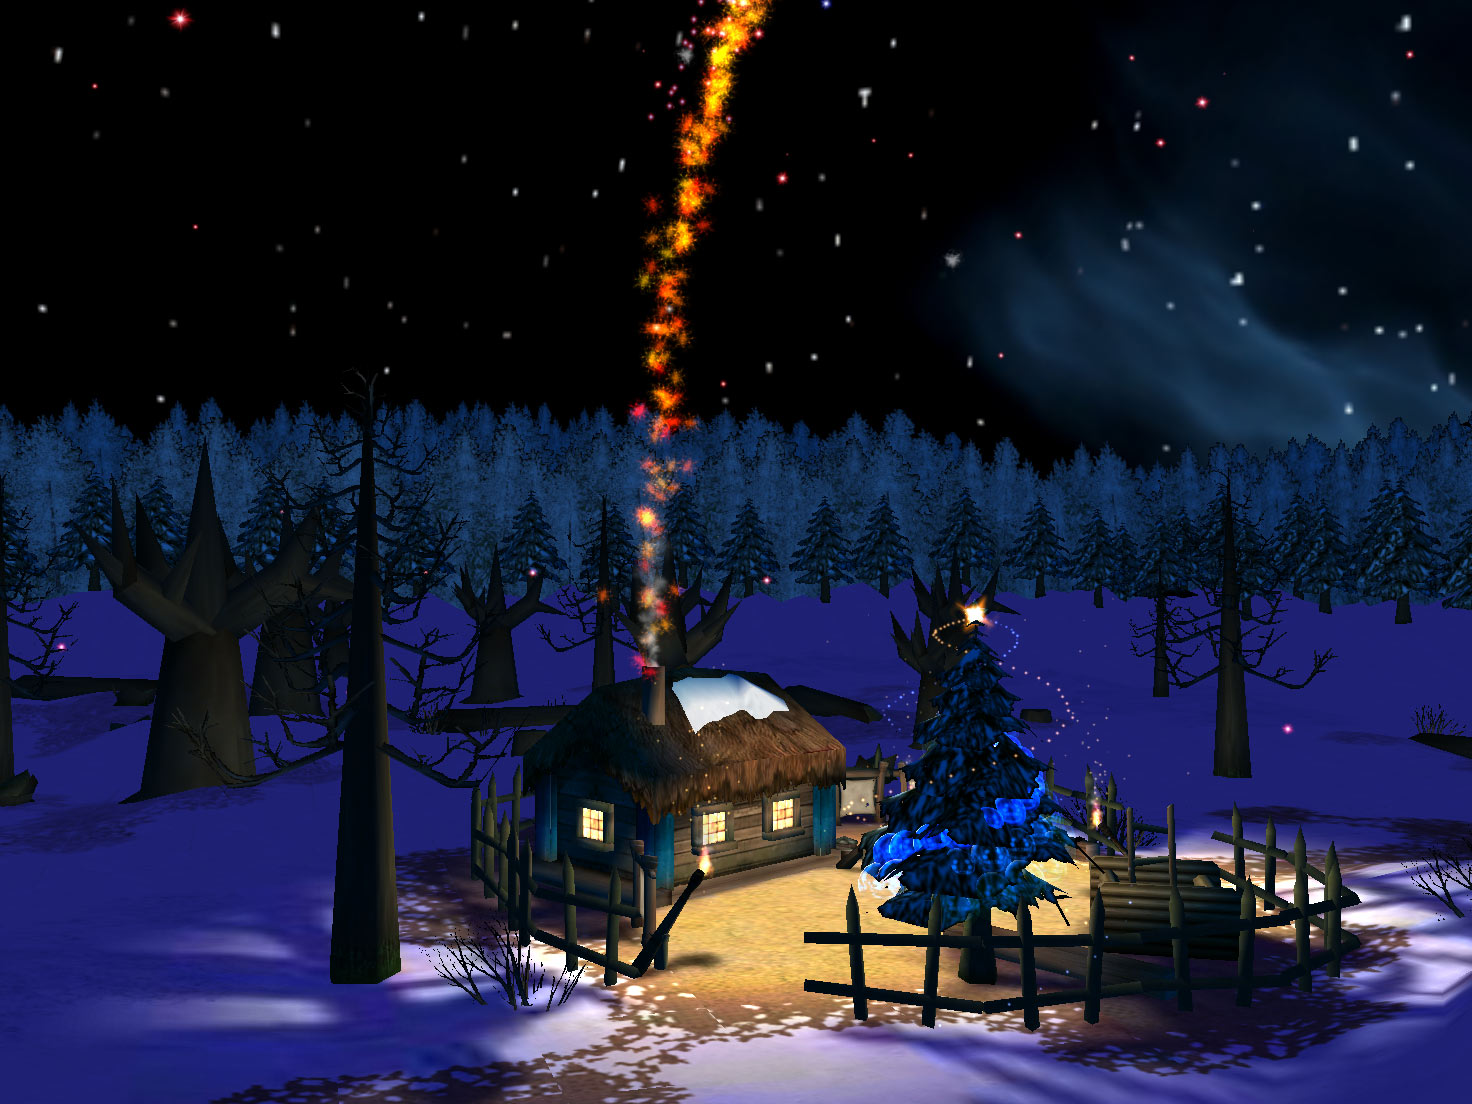 Christmas night 3d screensaver 1 0 free download for Screensaver natale 3d